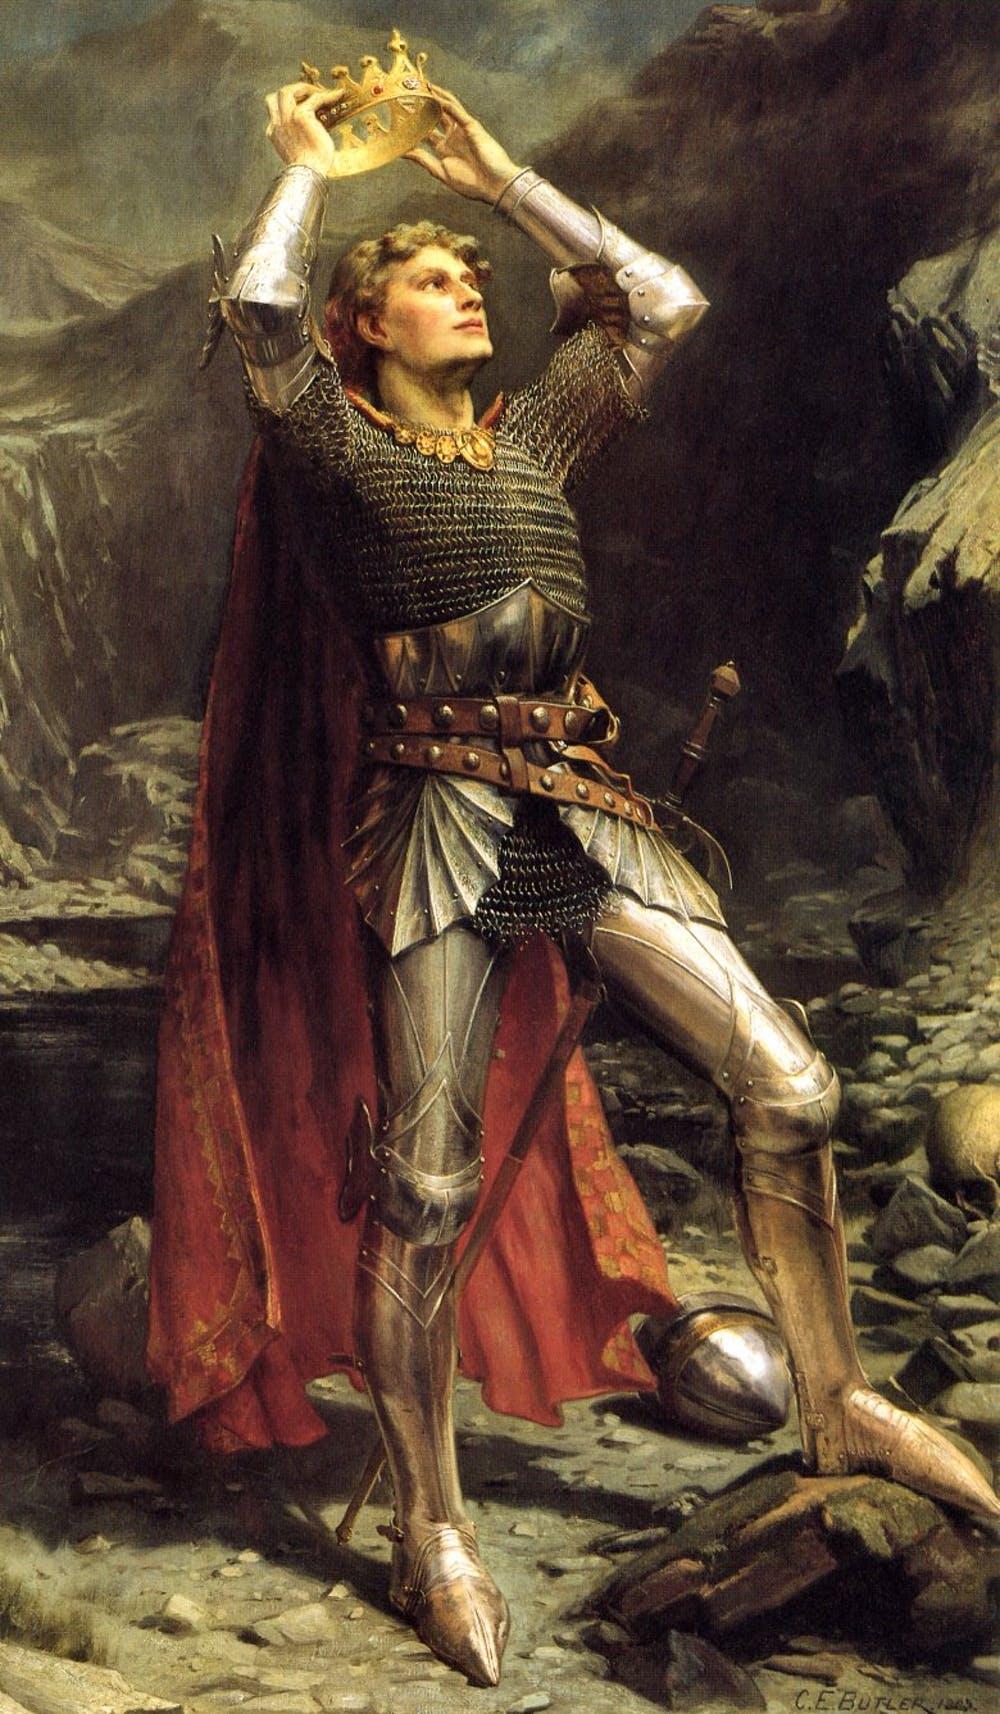 Guide to the classics: the Arthurian legend